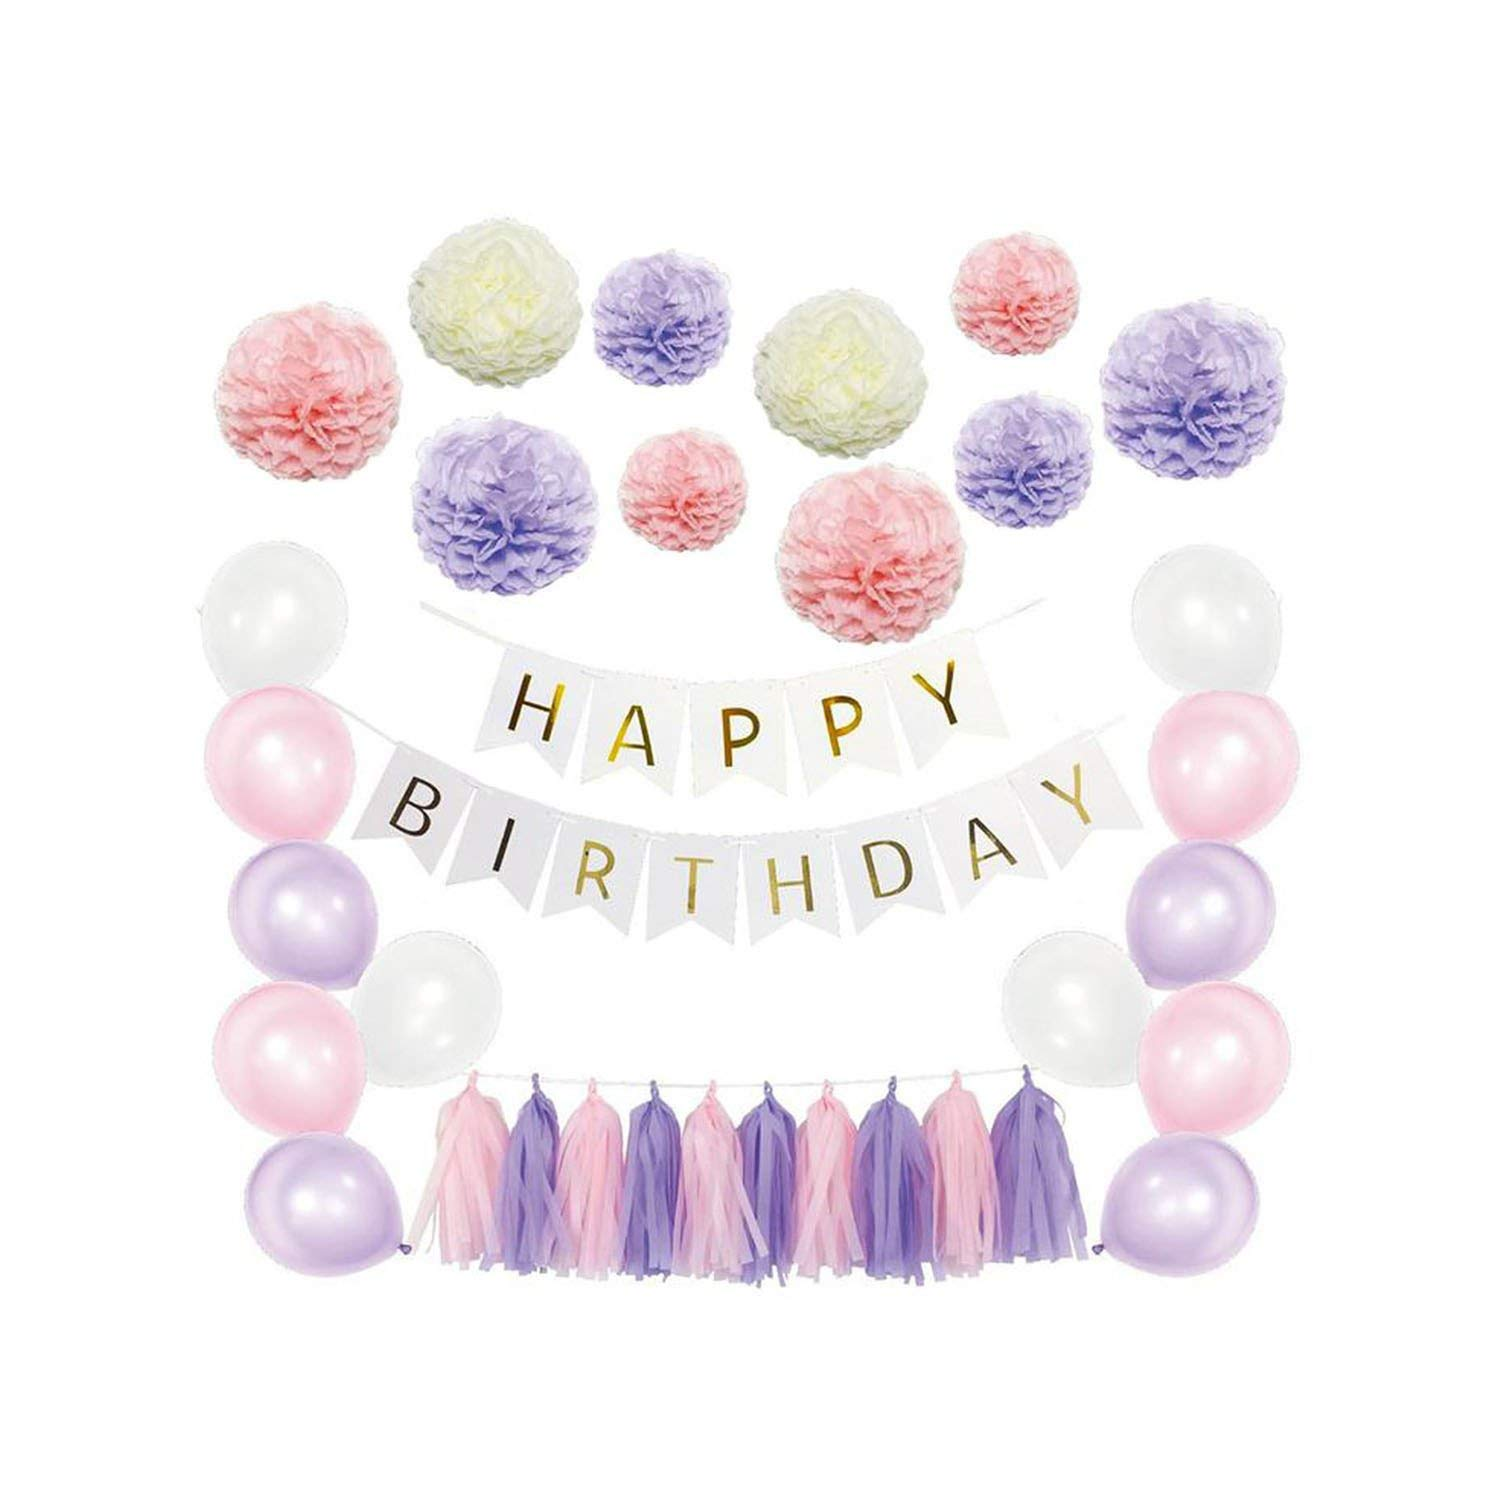 51 Pcs Paper Flowers Tassels DIY Paper Balloons Kit for Birthday Wedding Party Decoration (Pink Series),Purple